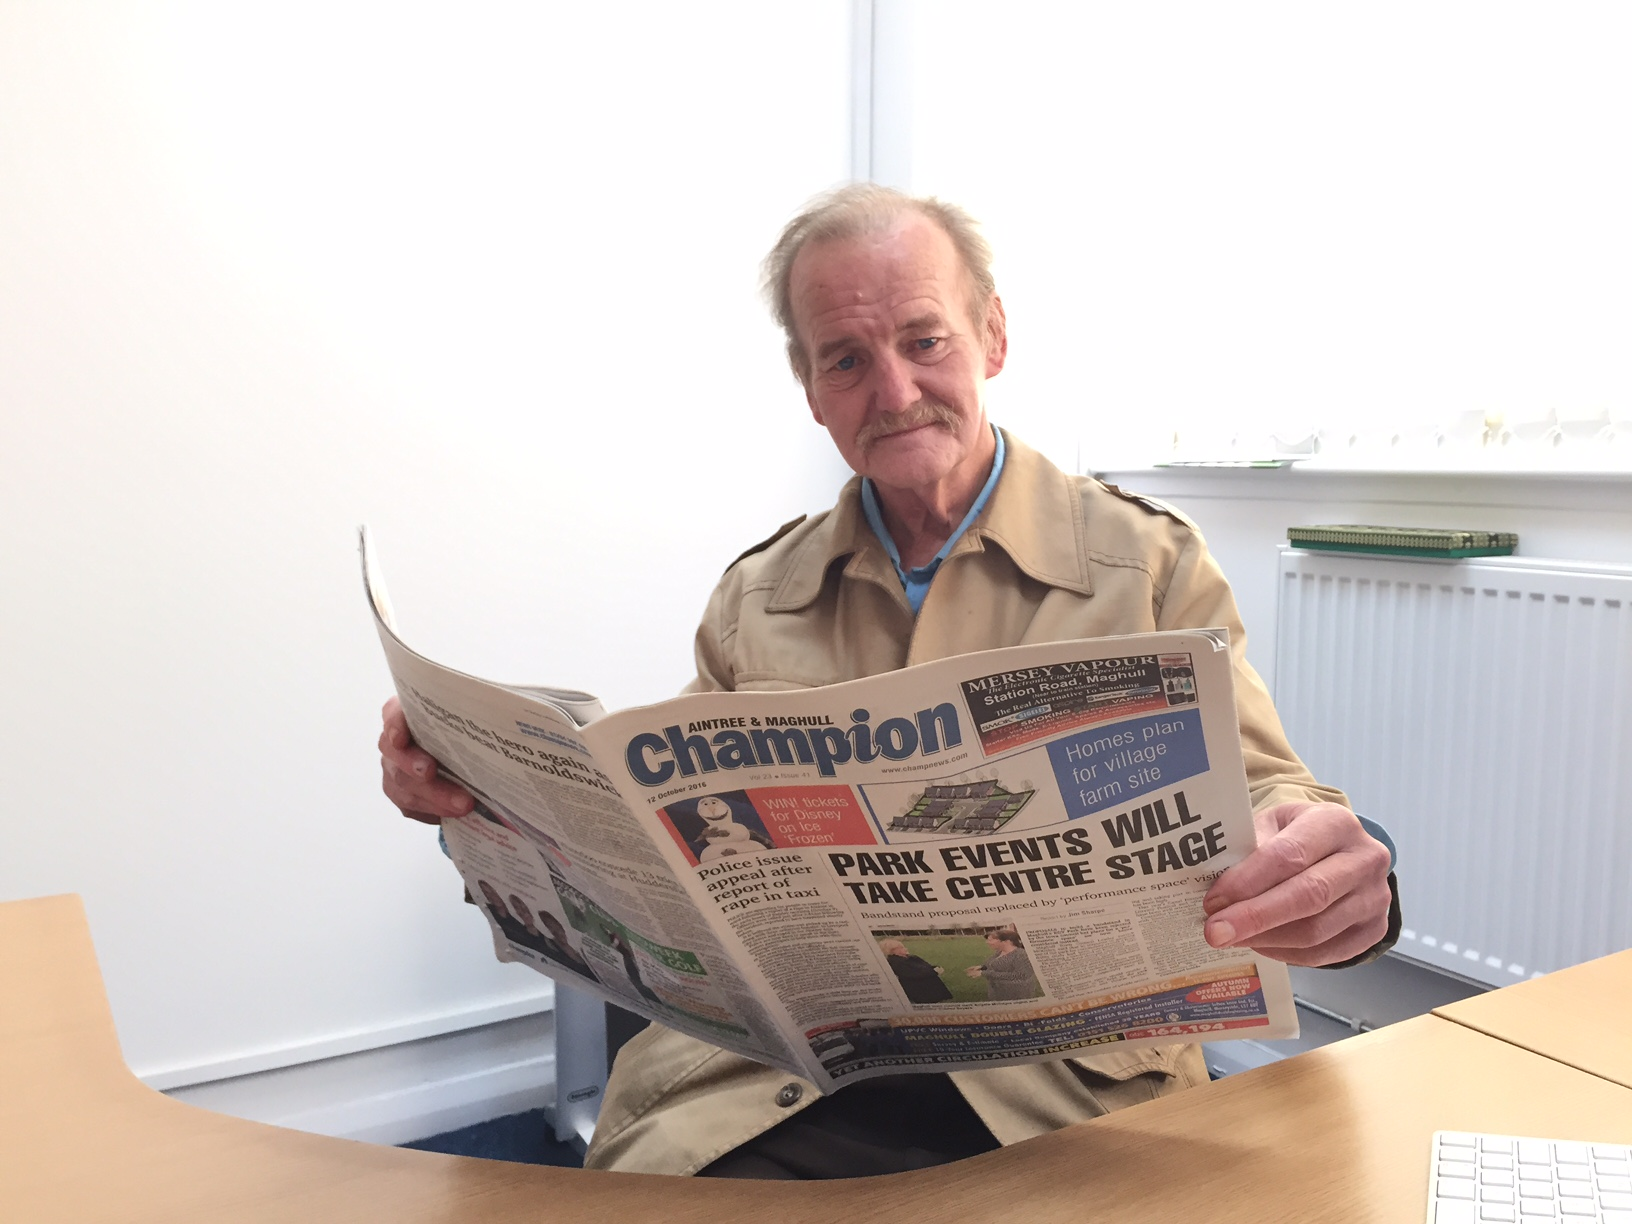 Champion's Jim Sharpe (One Man and his Dog) passes away after sudden illnesss